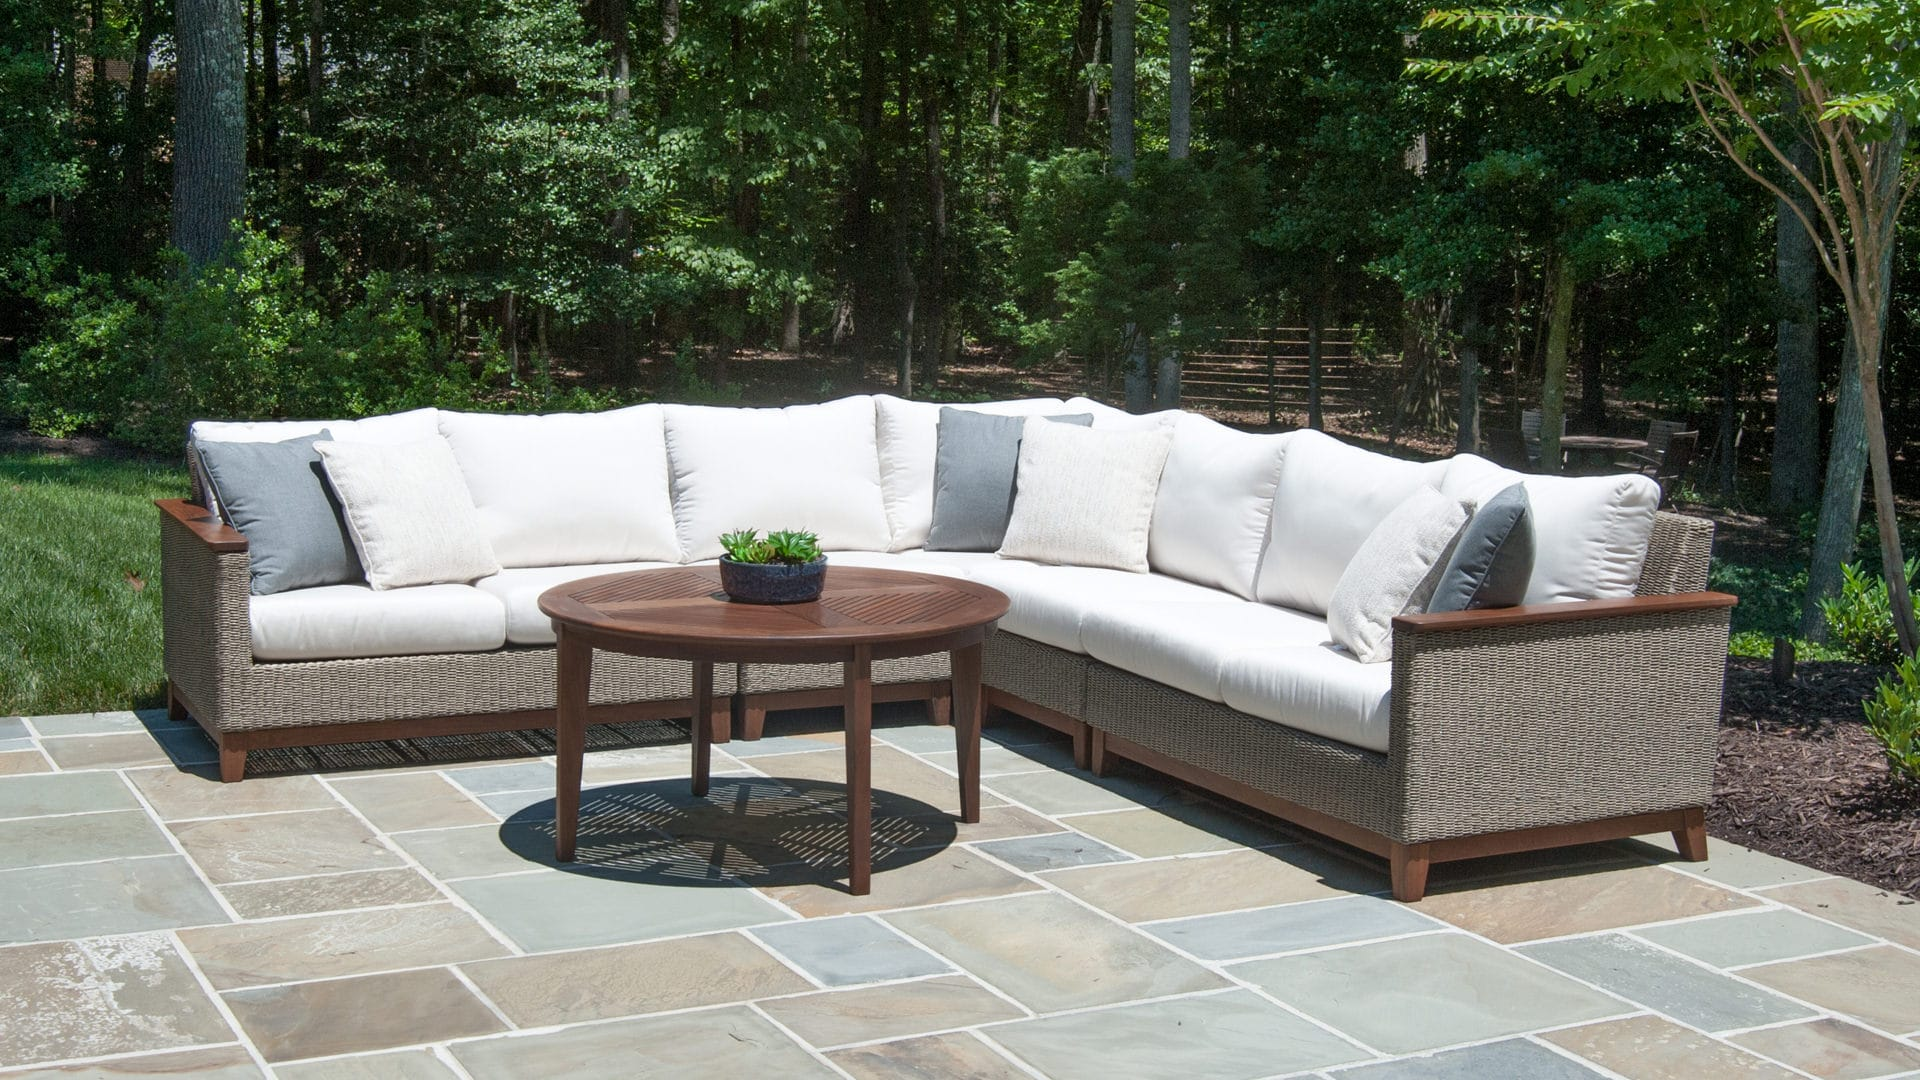 Outdoor furniture special order sale rich 39 s for the home for Patio furniture specials